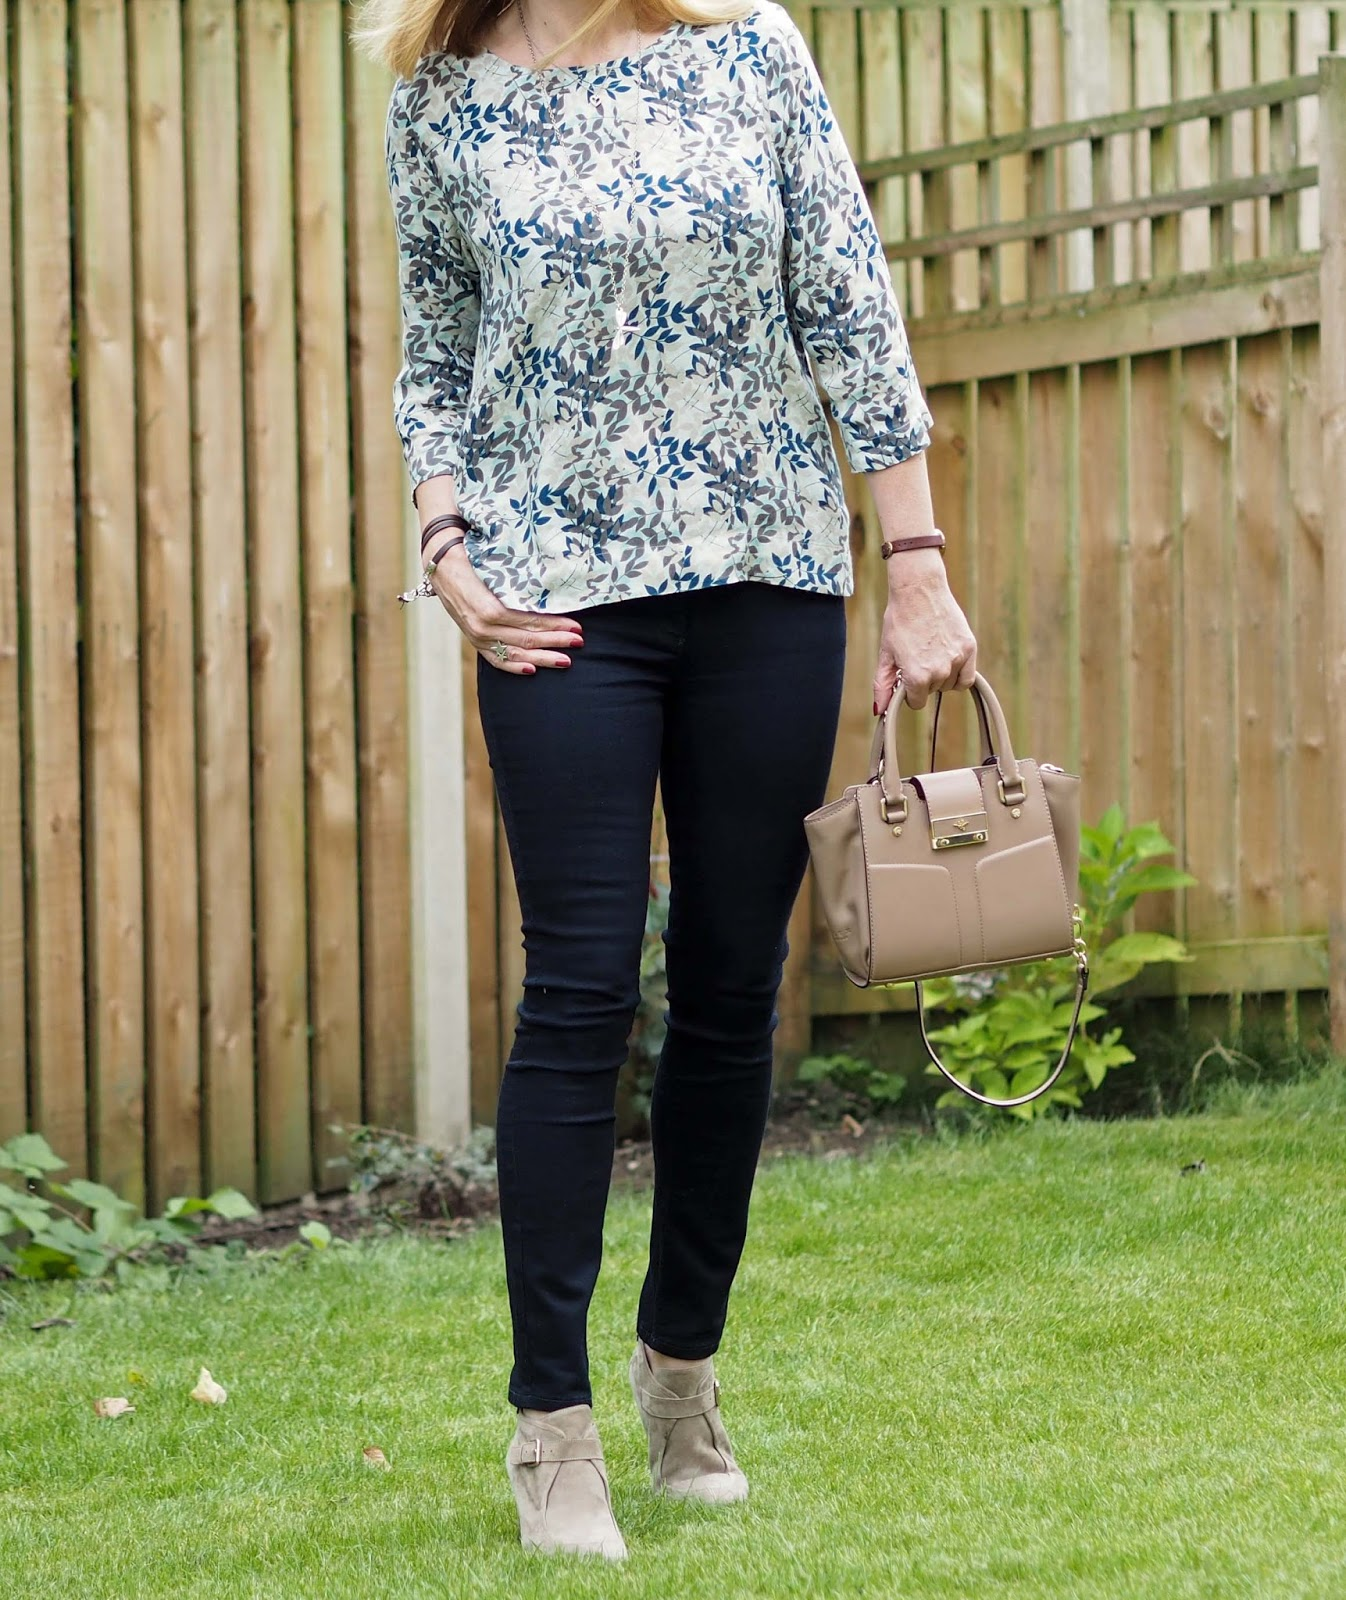 Tulchan leaf top, shades of teal and taupe, slim jeans, wedge boots